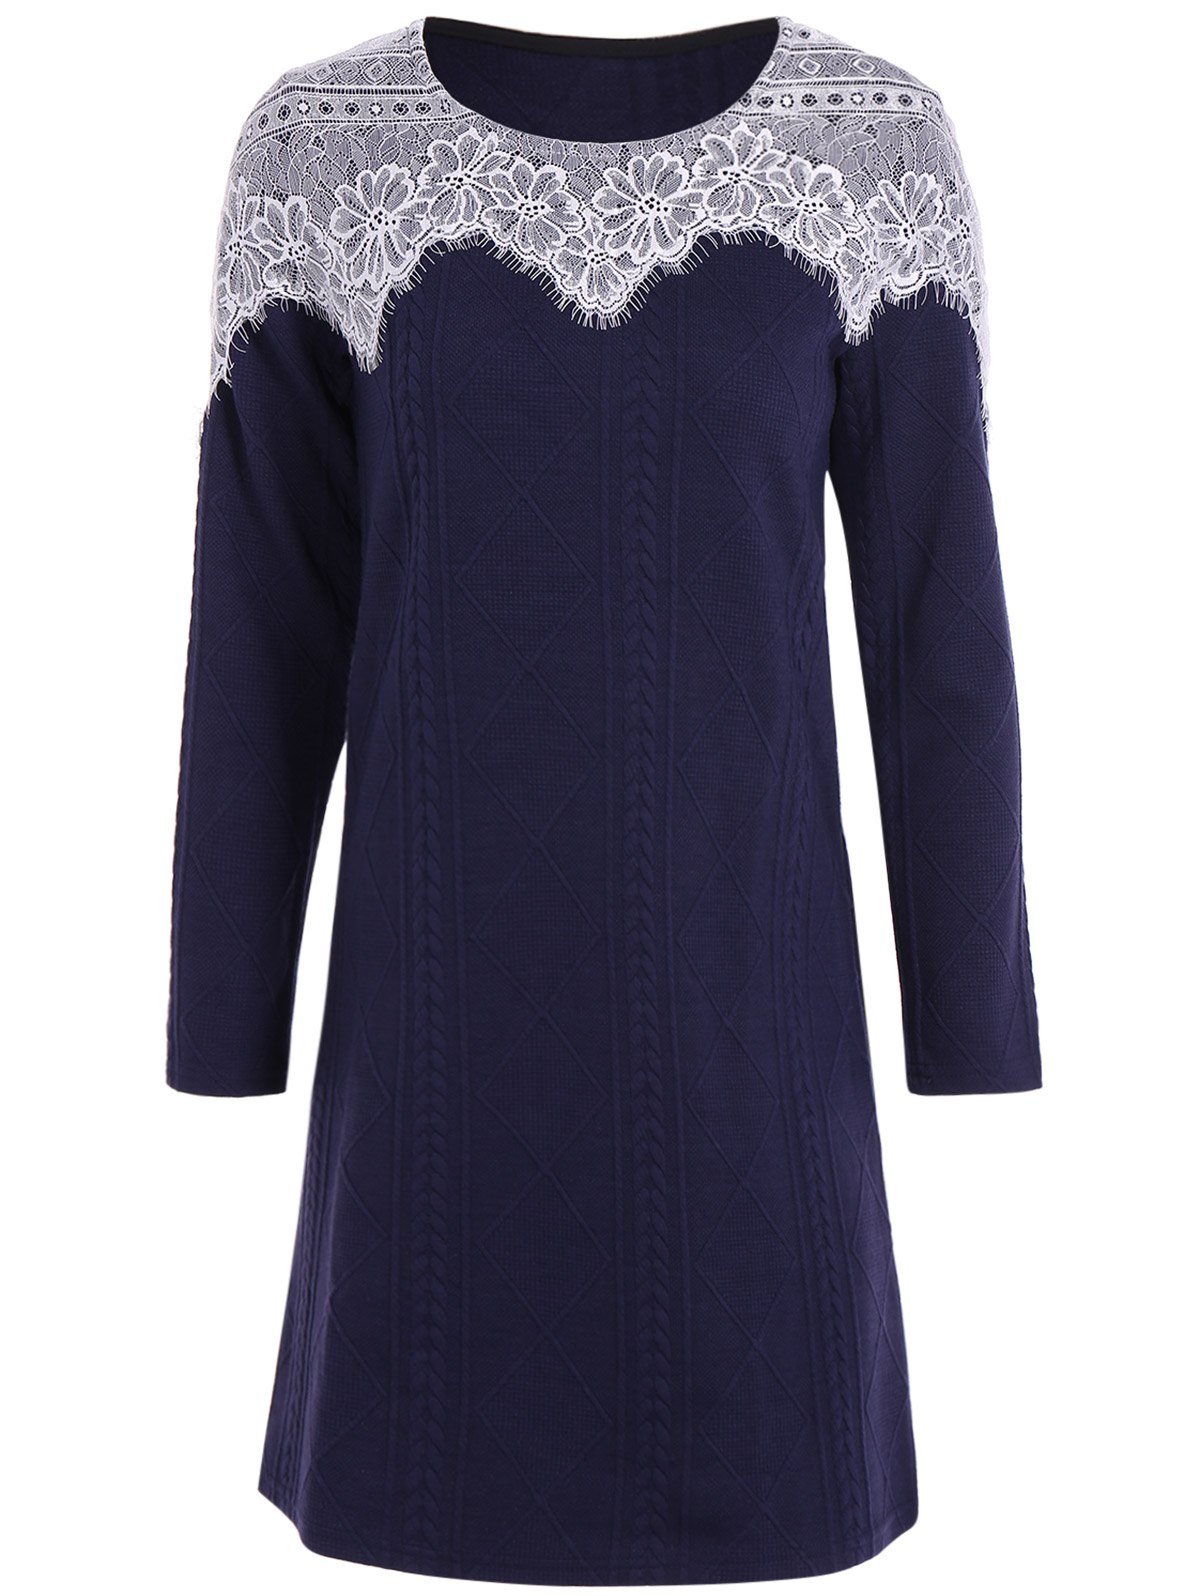 This jersey-knit party dress is effortless and elegant with the shimmer of understated sequins. The elastic waist creates a beautiful blouson drape accentuated by surplice detailing. A flirty slit finishes the look.